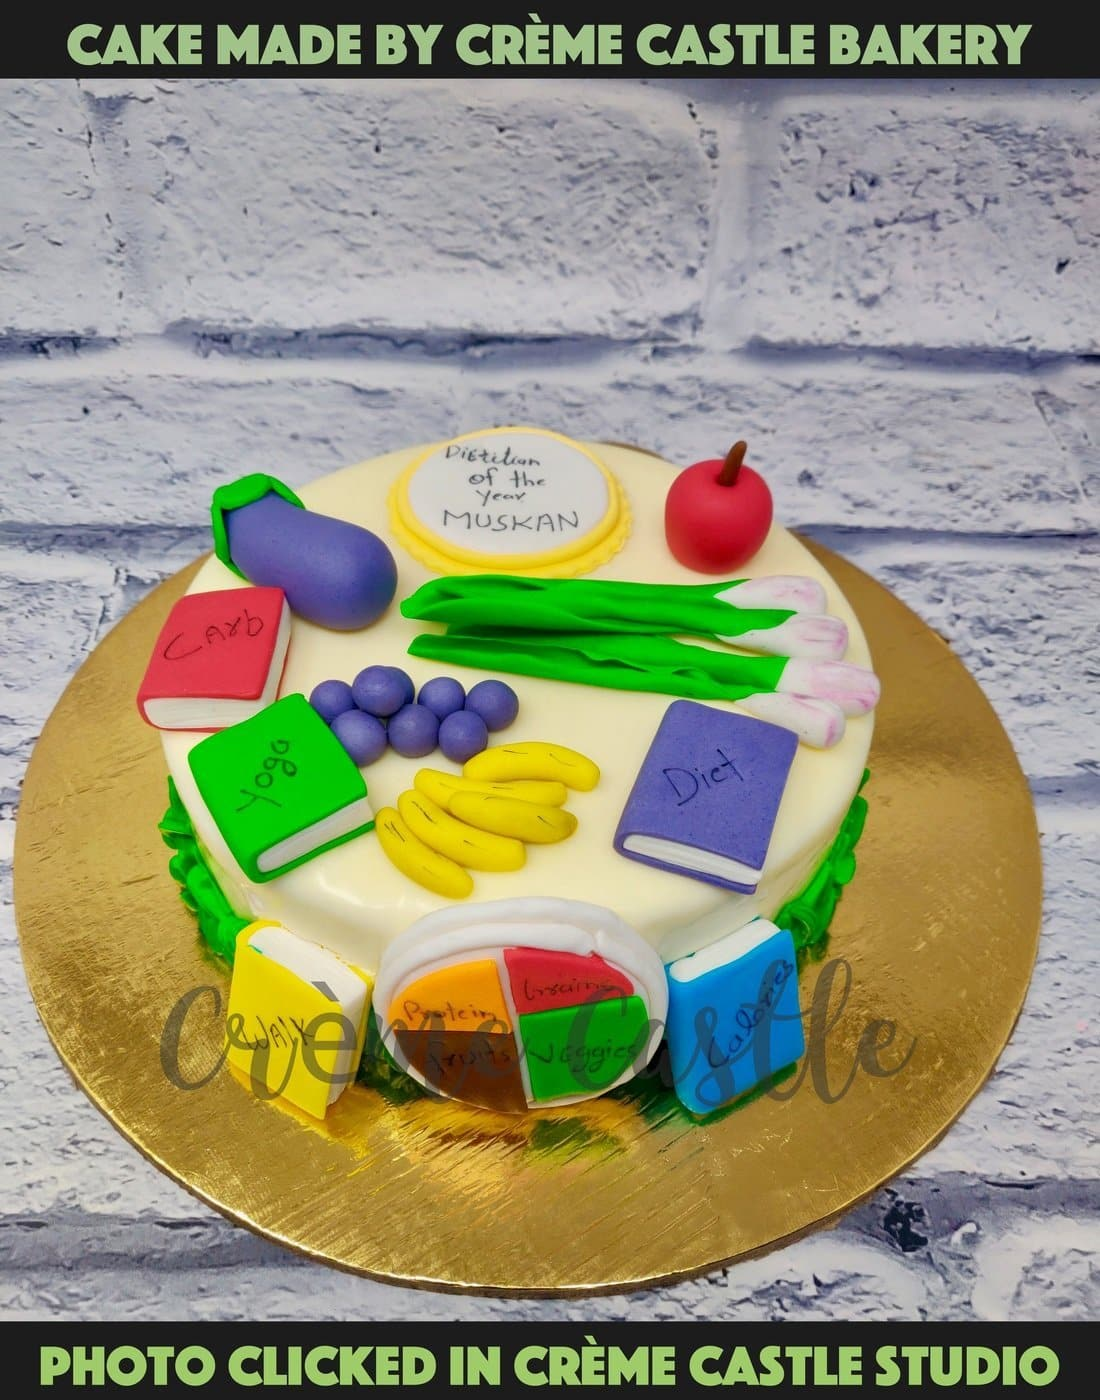 A cake for someone who loves to lead a healthy life and believes is healthy food. Well, on birthday, certainly one can indulge.